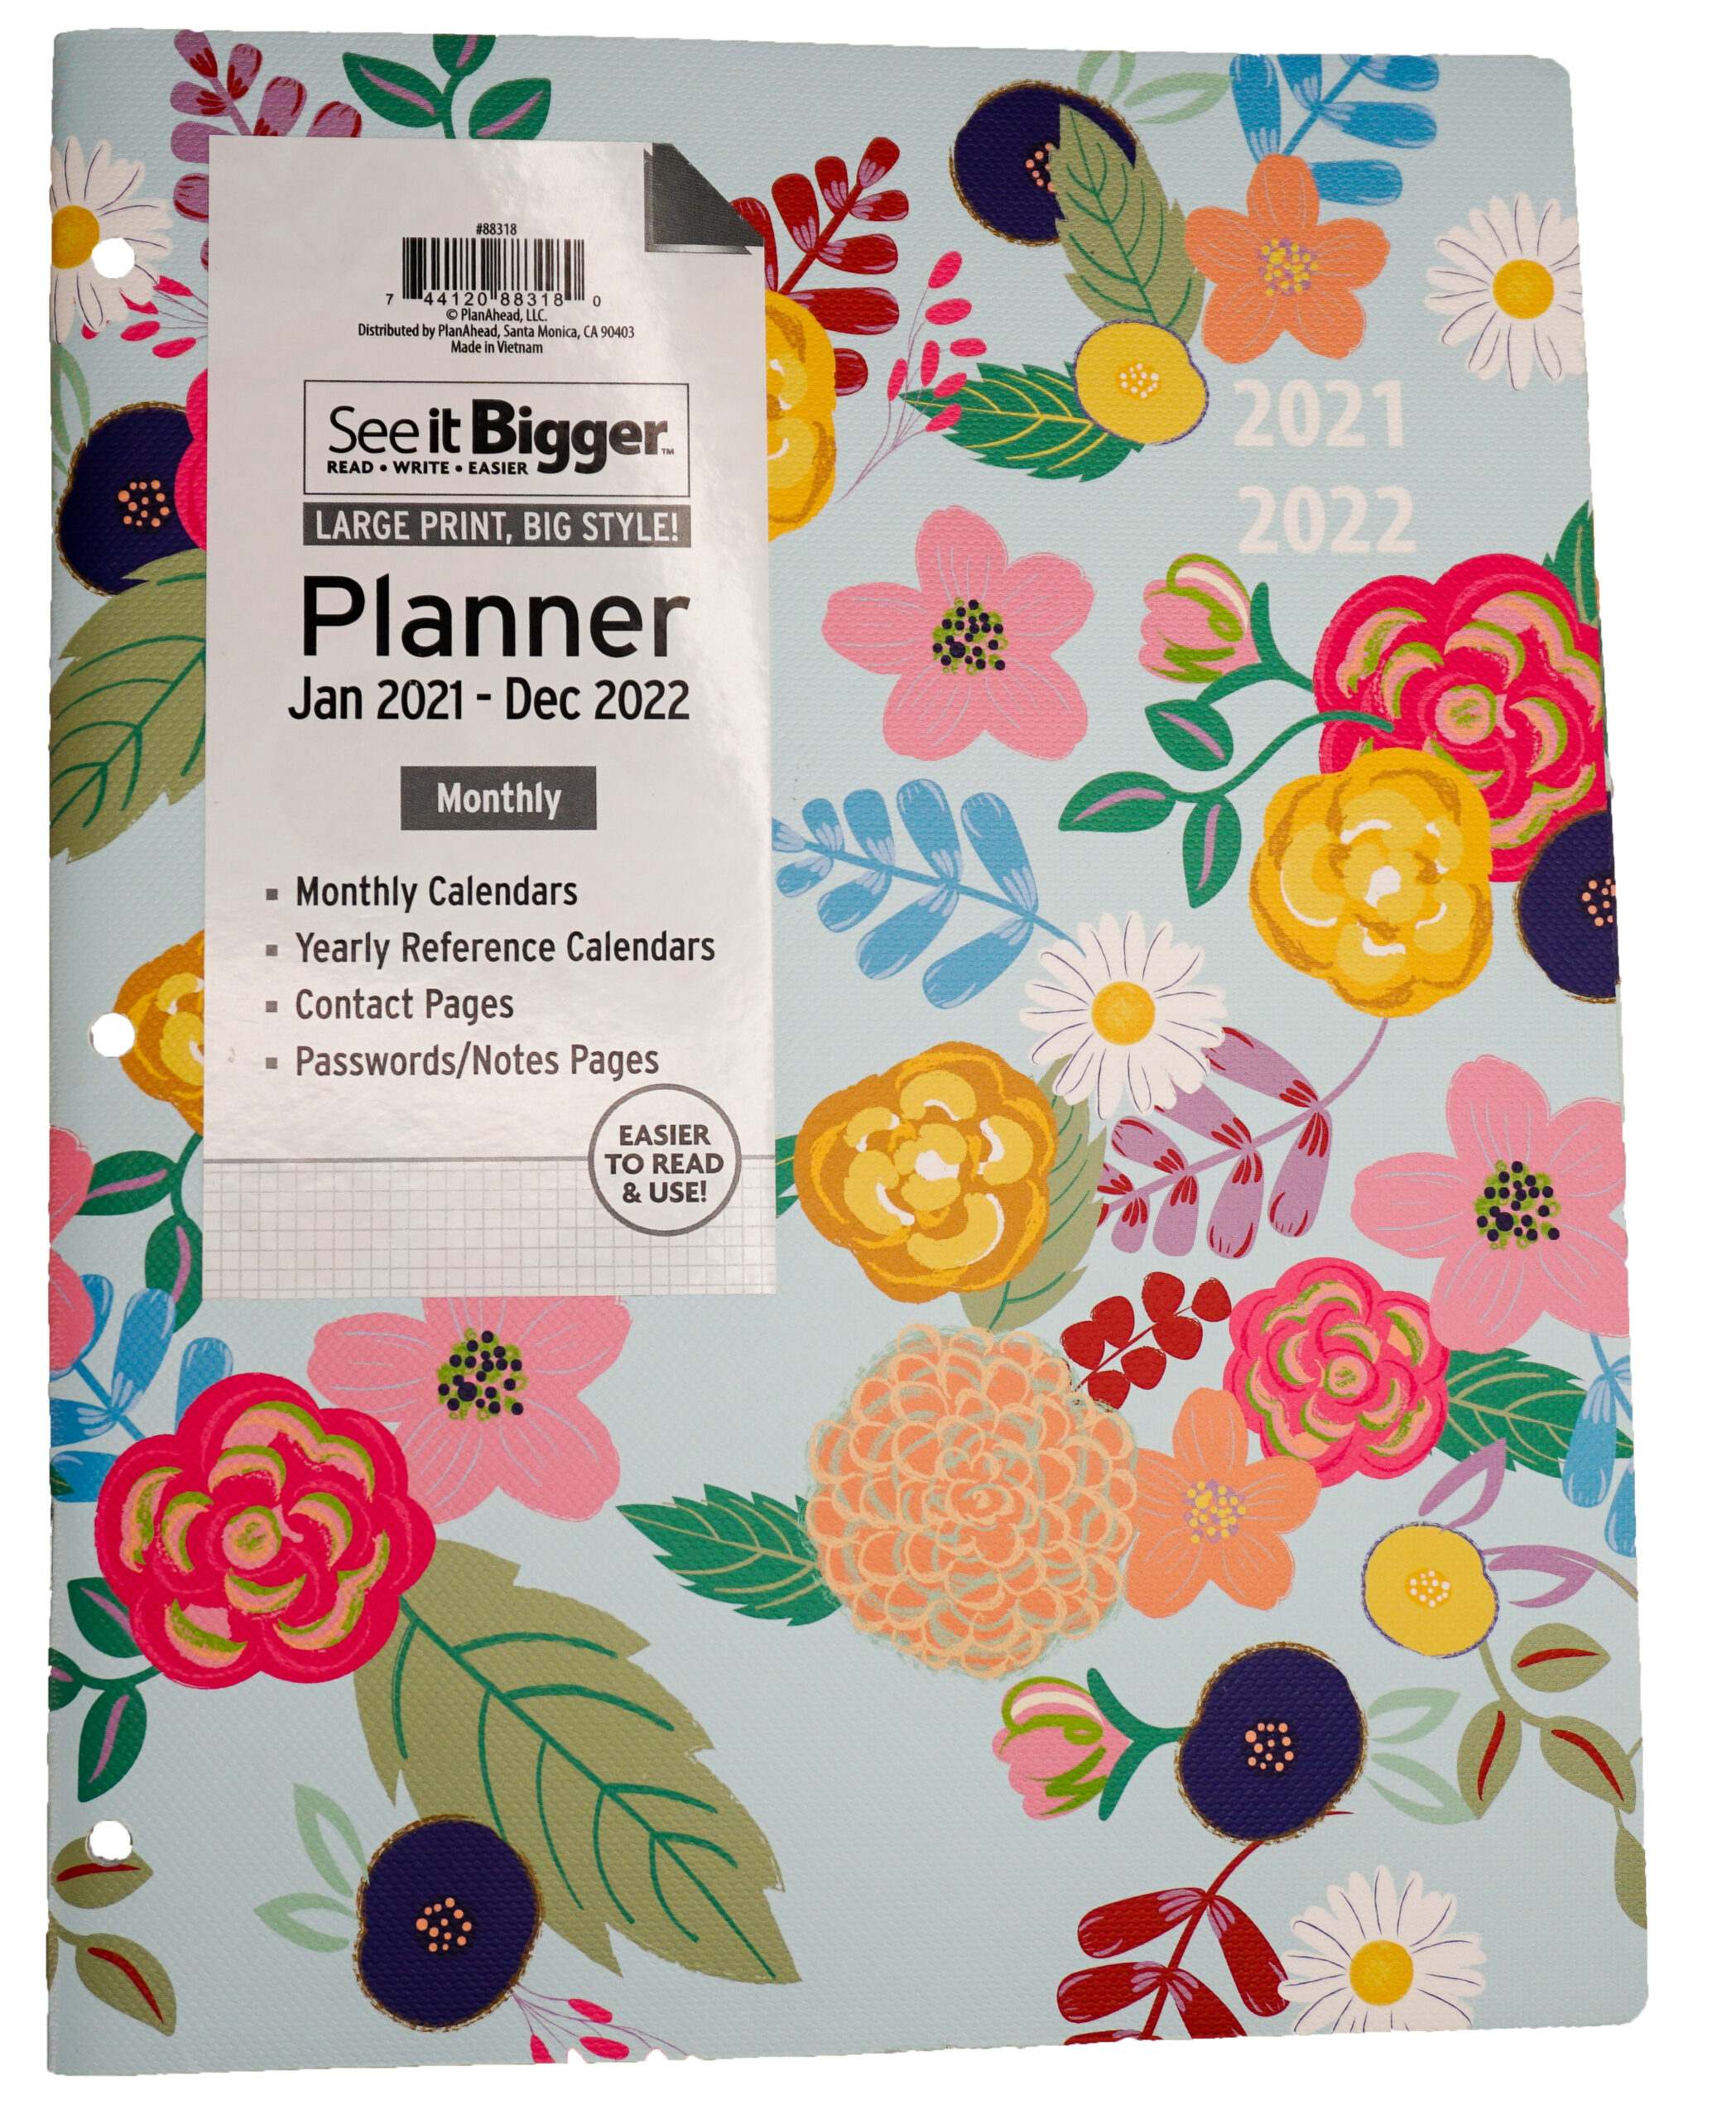 """Planahead See It Bigger, Planner, Jan 2021-Dec 2022, Monthly, 8.5"""" X 11"""" -  Walmart intended for Hunting Planner 2021 Monthly"""